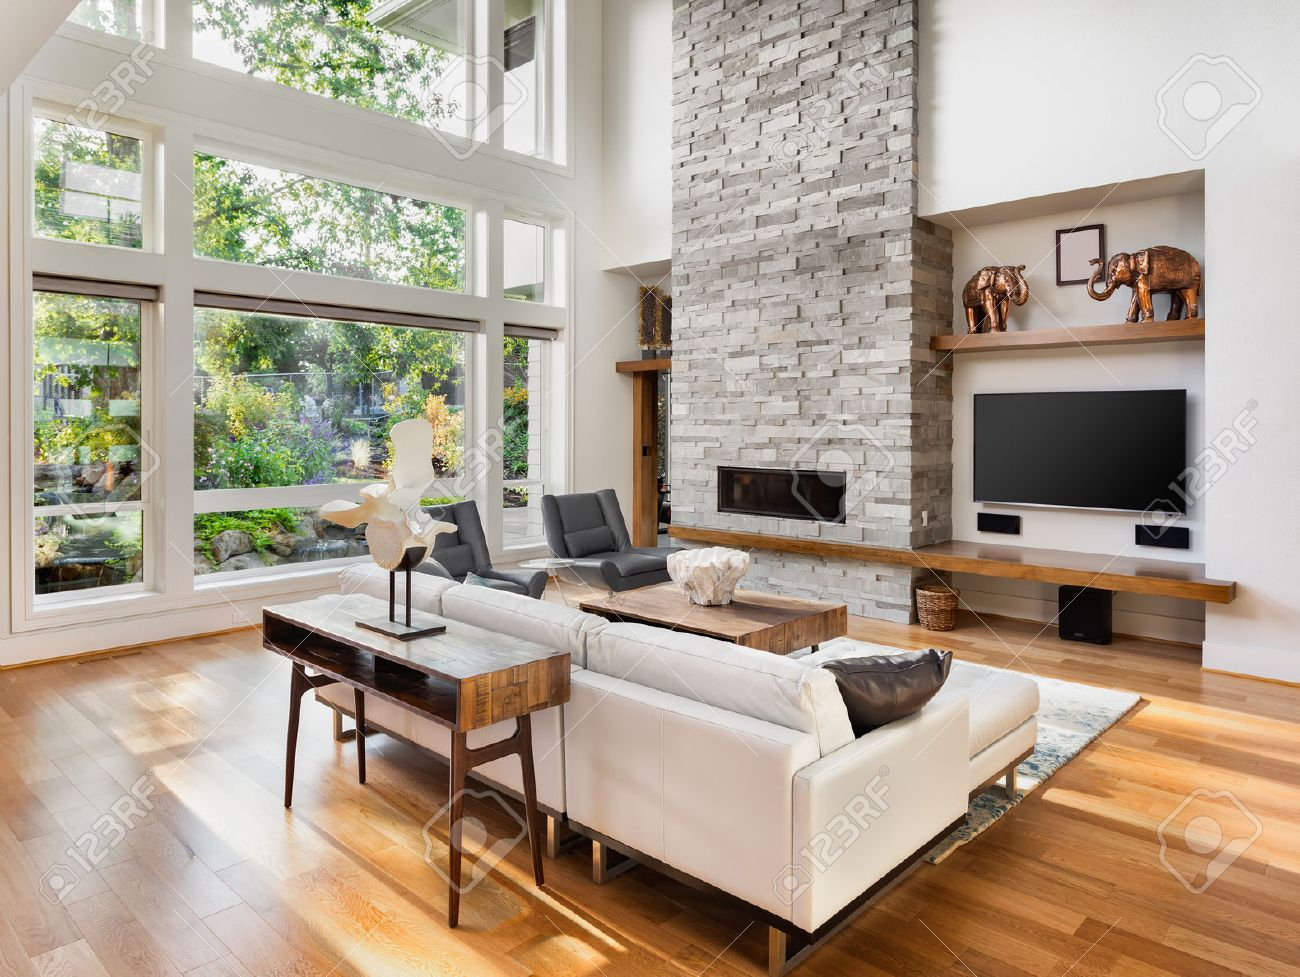 fireplace windows. living room interior with hardwood floors  fireplace and large bank of windows view Living Room Interior With Hardwood Floors Fireplace And Large